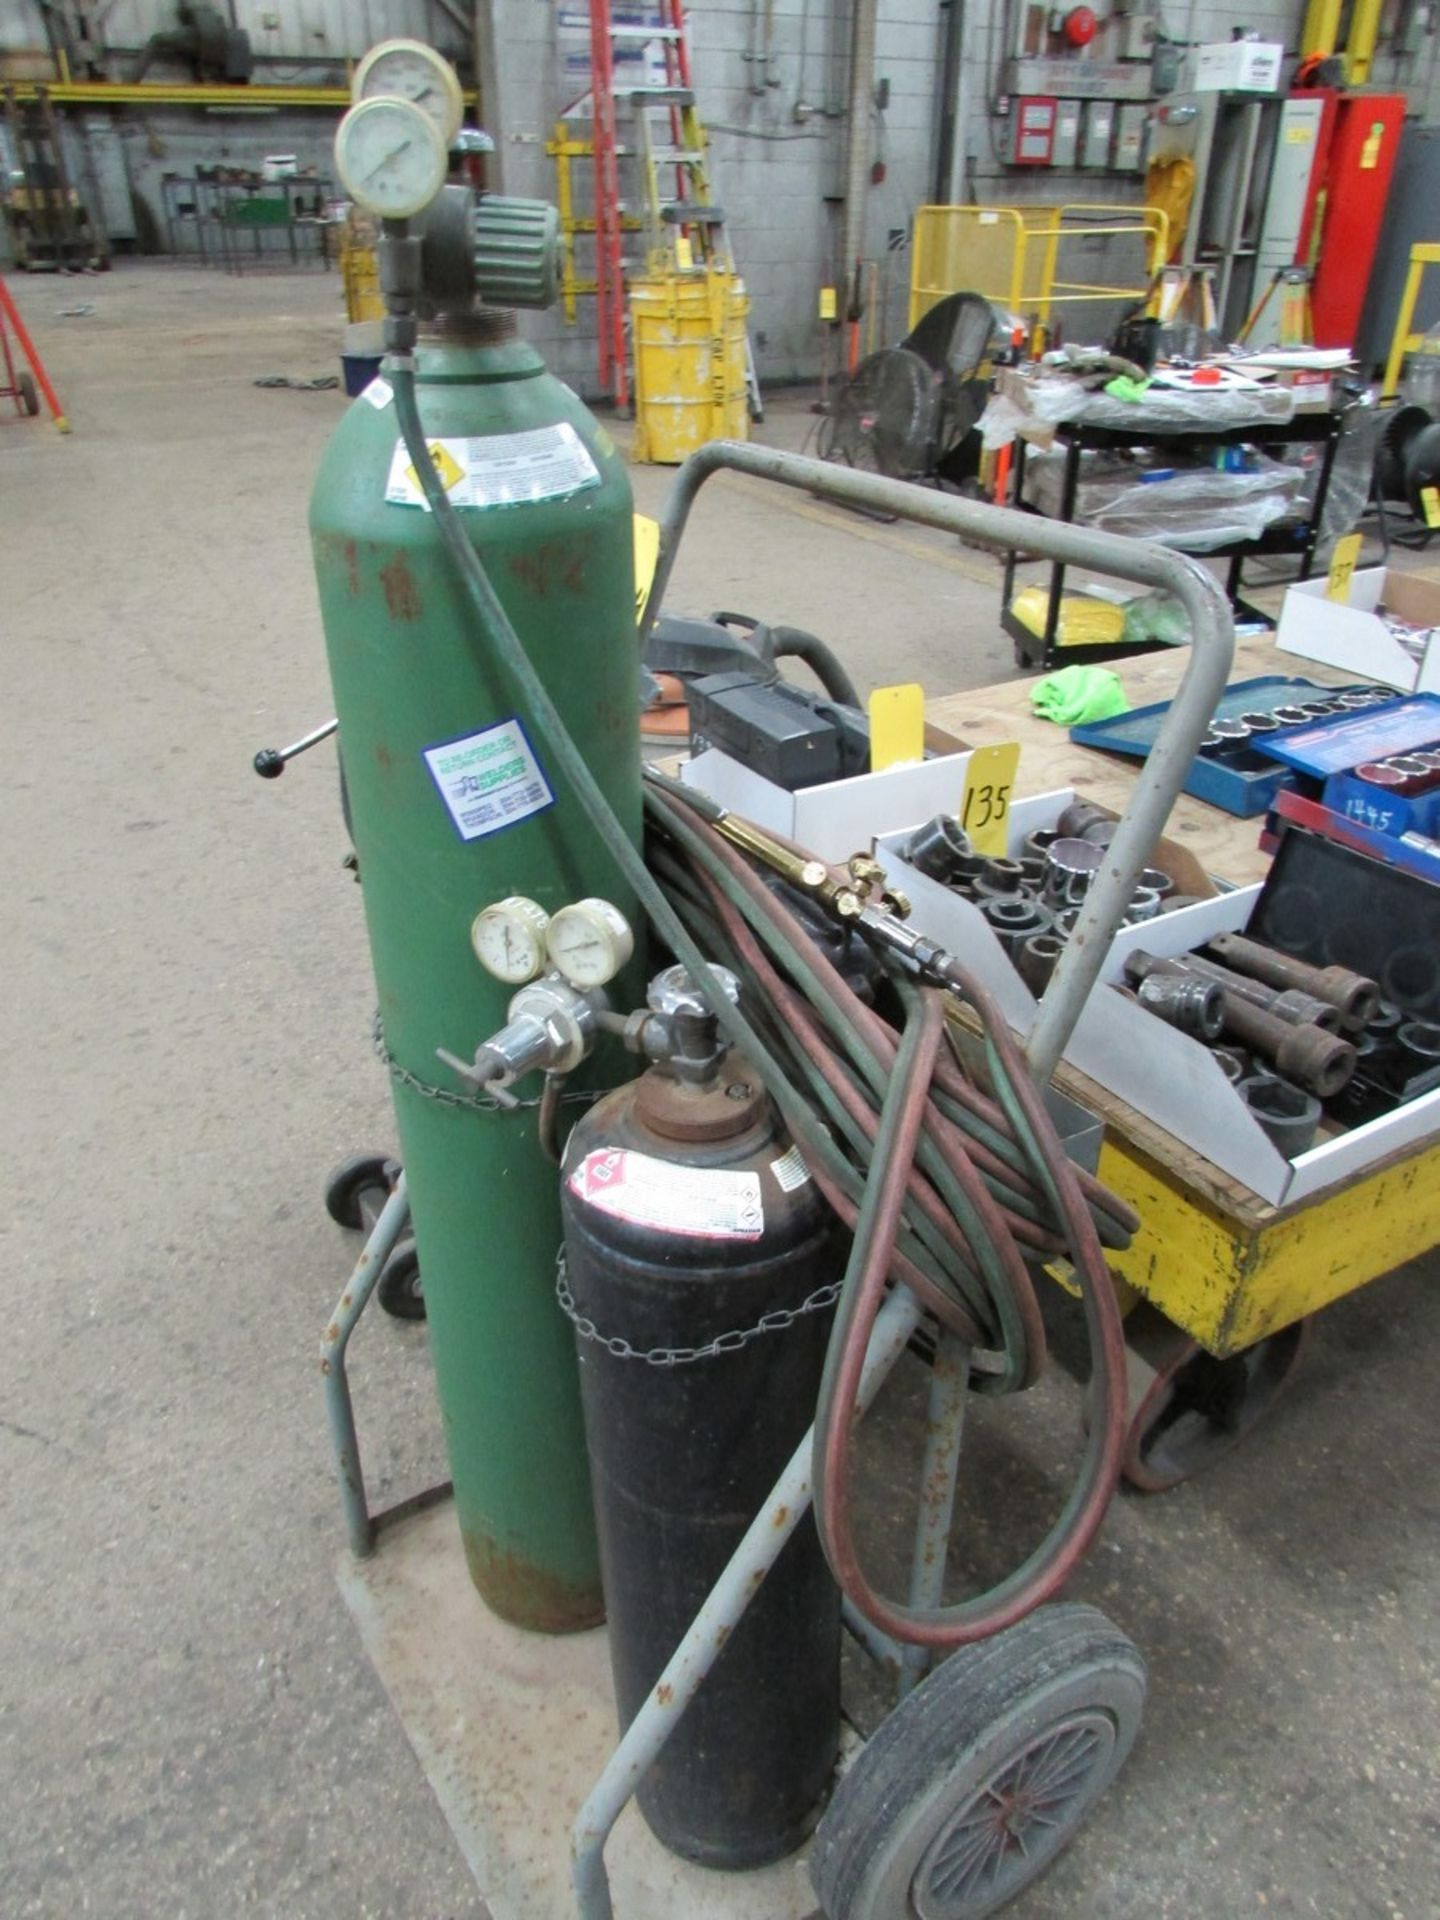 Lot 134 - Oxyacetylene cart w/ torch, hoses and regulator (tanks not included)